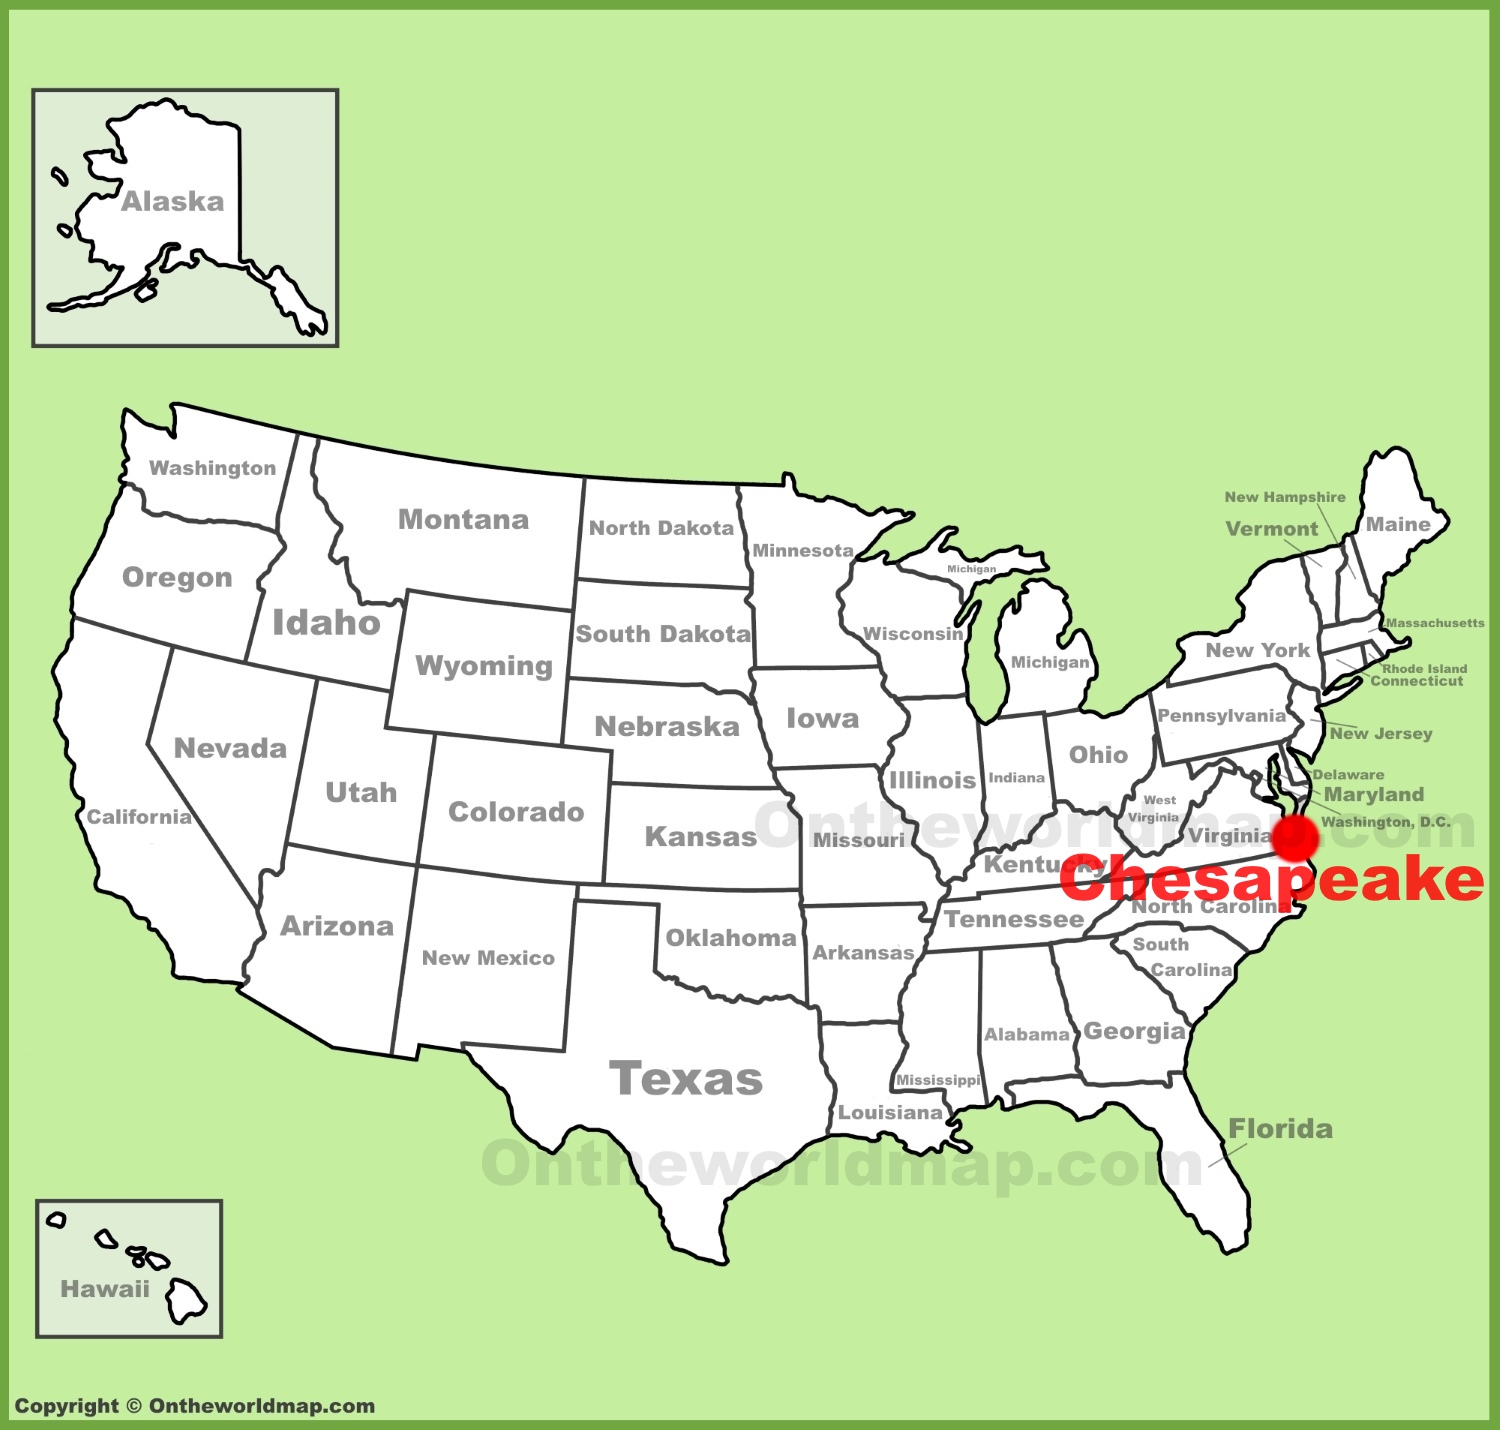 Chesapeake location on the US Map